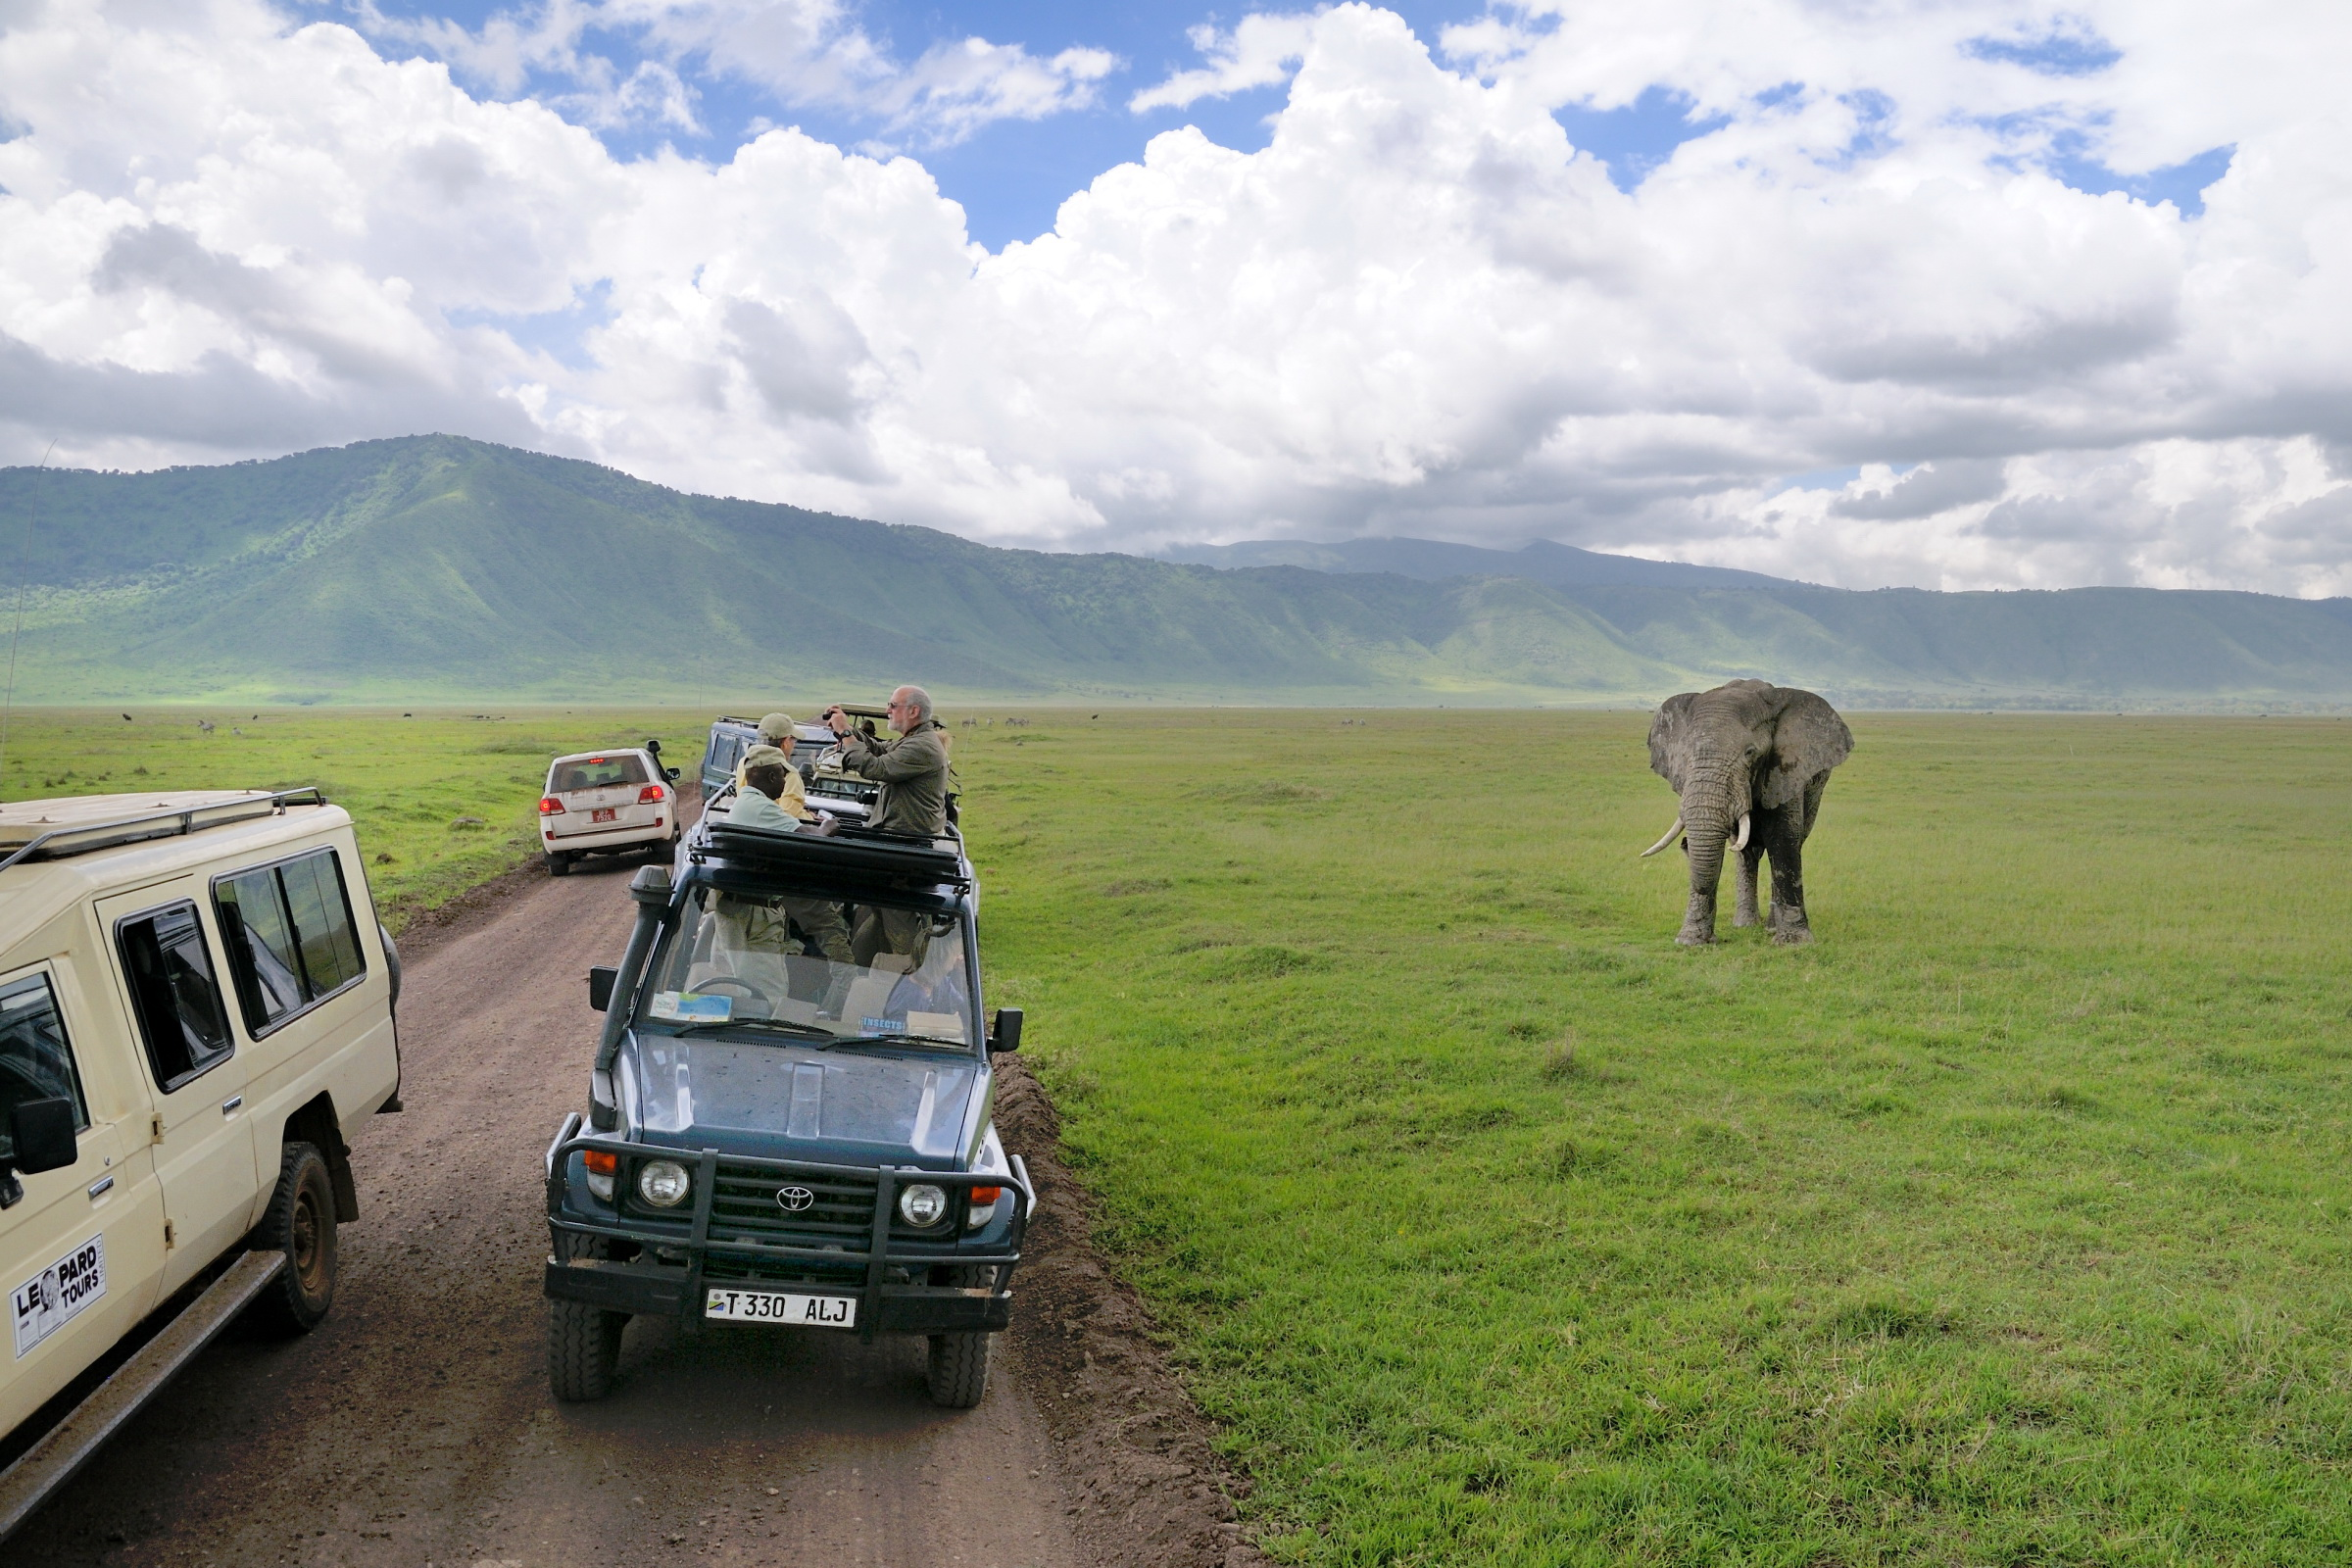 Tourism standard operating procedures launched